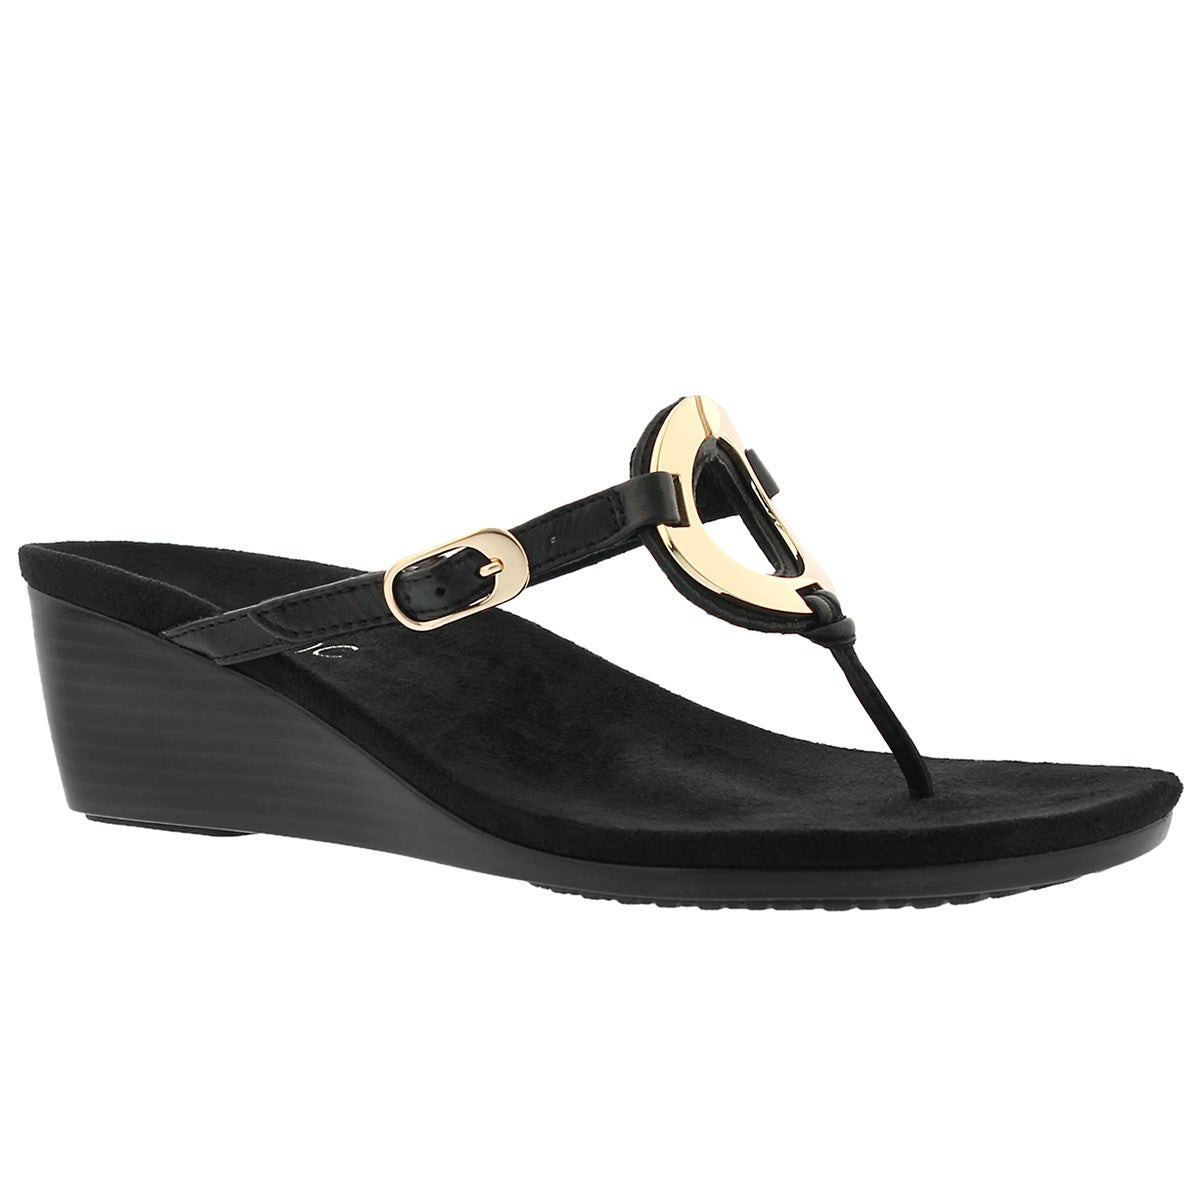 Women's ORCHID blk arch support thong wdg sandals